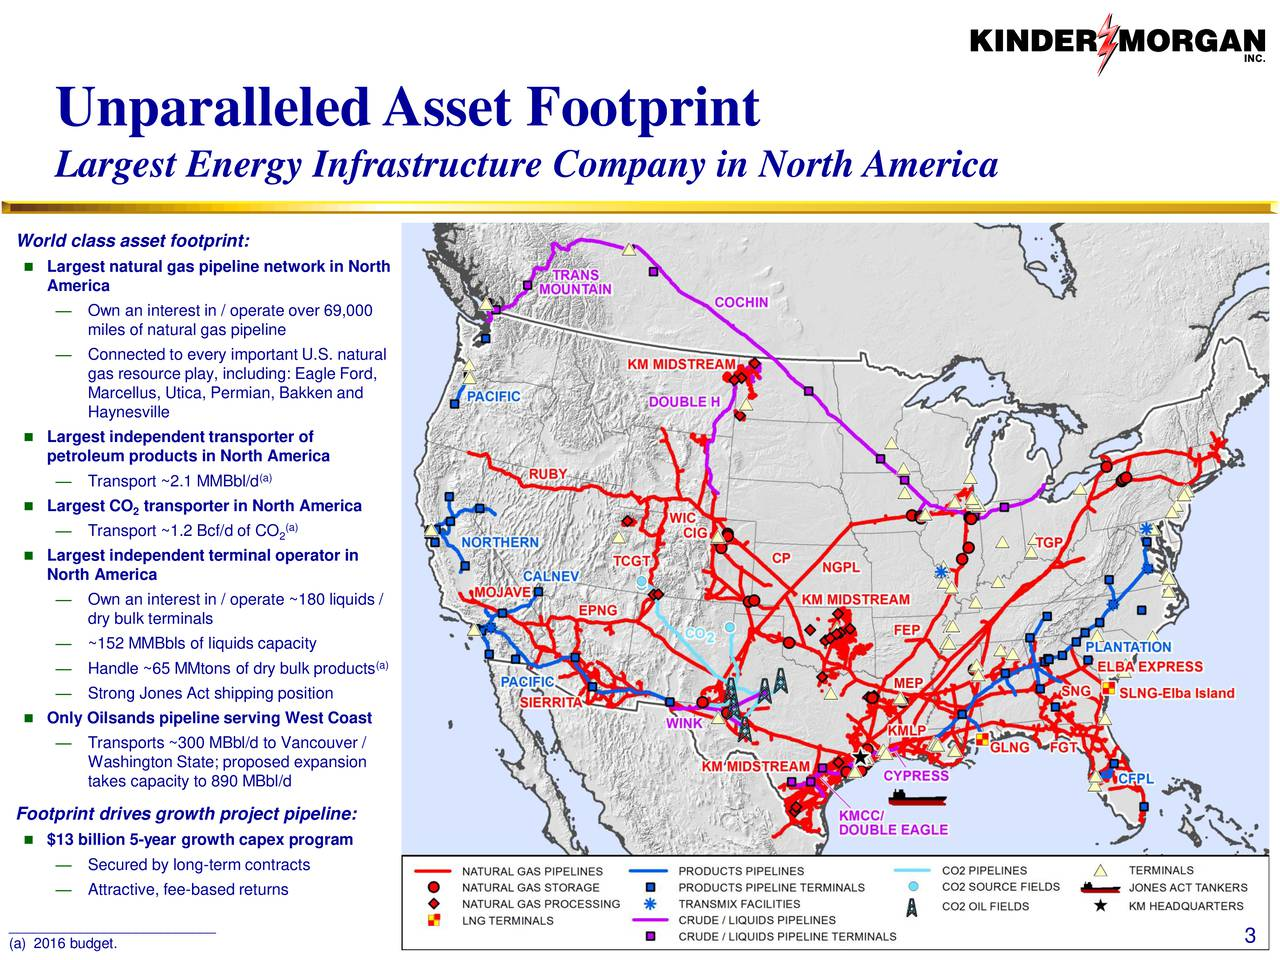 Largest Energy Infrastructure Company in North America World class asset footprint: Largest natural gas pipeline network in North America Own an interest in / operate over 69,000 miles of natural gas pipeline Connected to every important U.S. natural gas resource play, including: Eagle Ford, Marcellus, Utica, Permian, Bakken and Haynesville Largest independent transporter of petroleum products in North America Transport ~2.1 MMBbl/d Largest CO transporter in North America 2 Transport ~1.2 Bcf/d 2f CO Largest independent terminal operator in North America Own an interest in / operate ~180 liquids / dry bulk terminals ~152 MMBbls of liquids capacity Handle ~65 MMtons of dry bulk products Strong Jones Act shipping position Only Oilsands pipeline serving West Coast Transports ~300 MBbl/d to Vancouver / Washington State; proposed expansion takes capacity to 890 MBbl/d Footprint drives growth project pipeline: $13 billion 5-year growth capex program Secured by long-term contracts Attractive, fee-based returns __________________________ (a) 2016 budget. 3